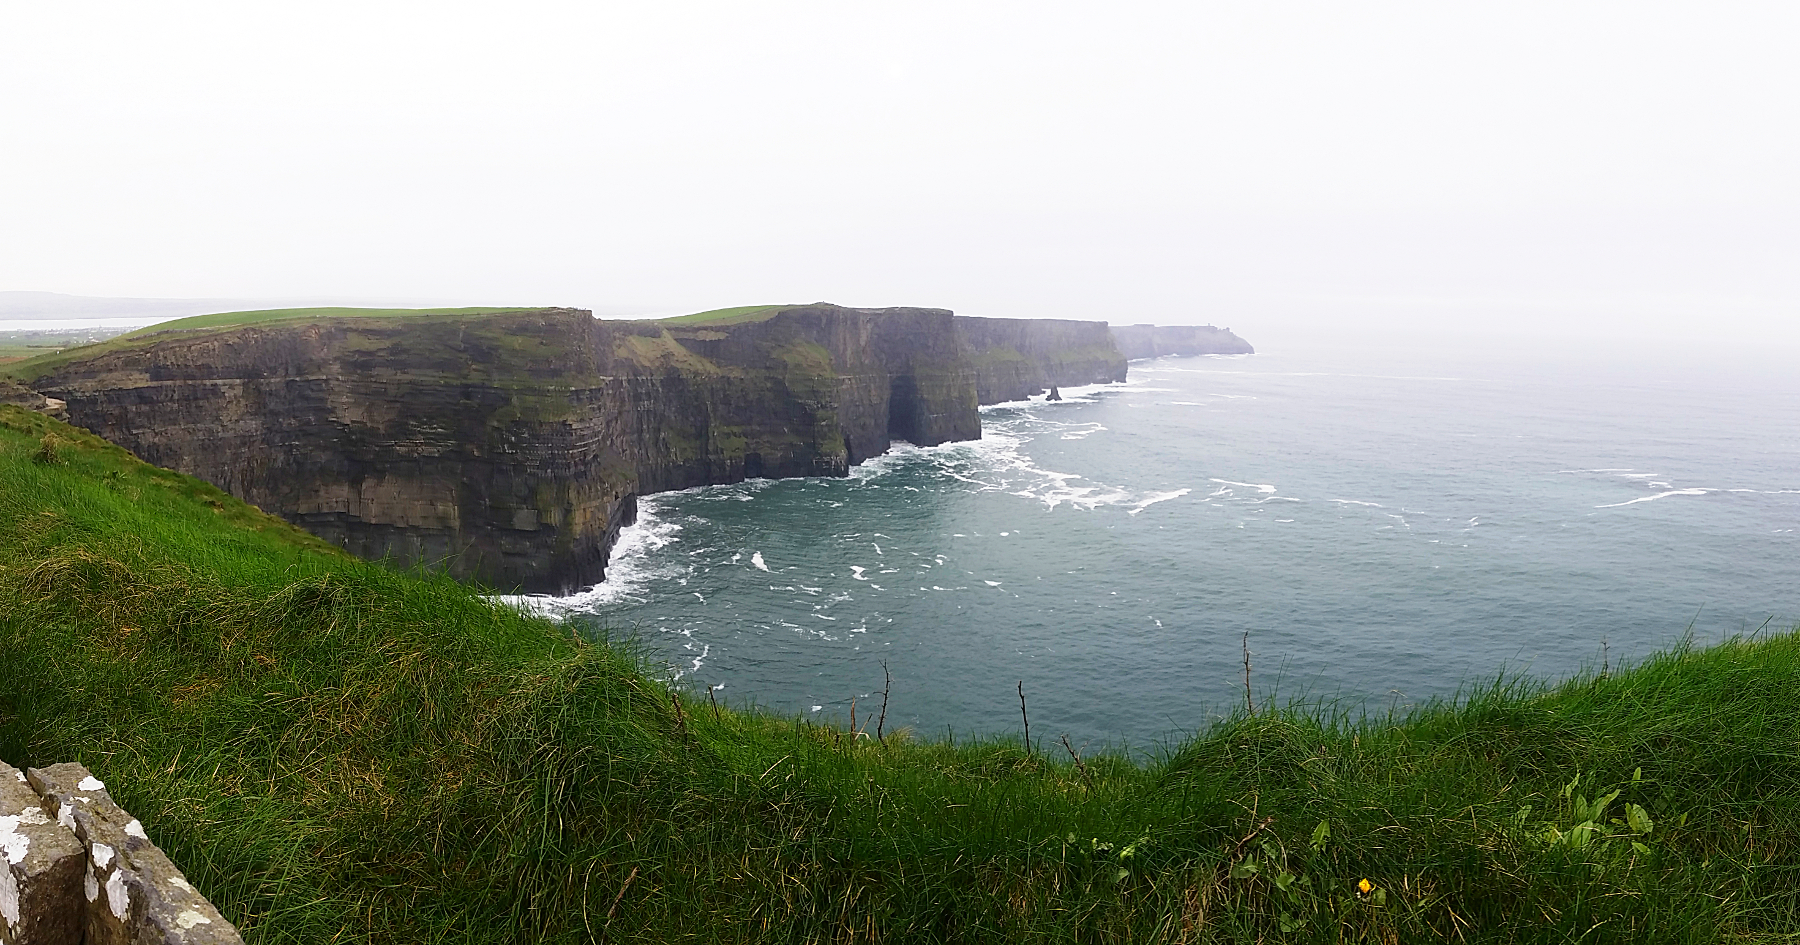 Panorama paysage Cliffs of Moher, Falaises de Moher, Irlande